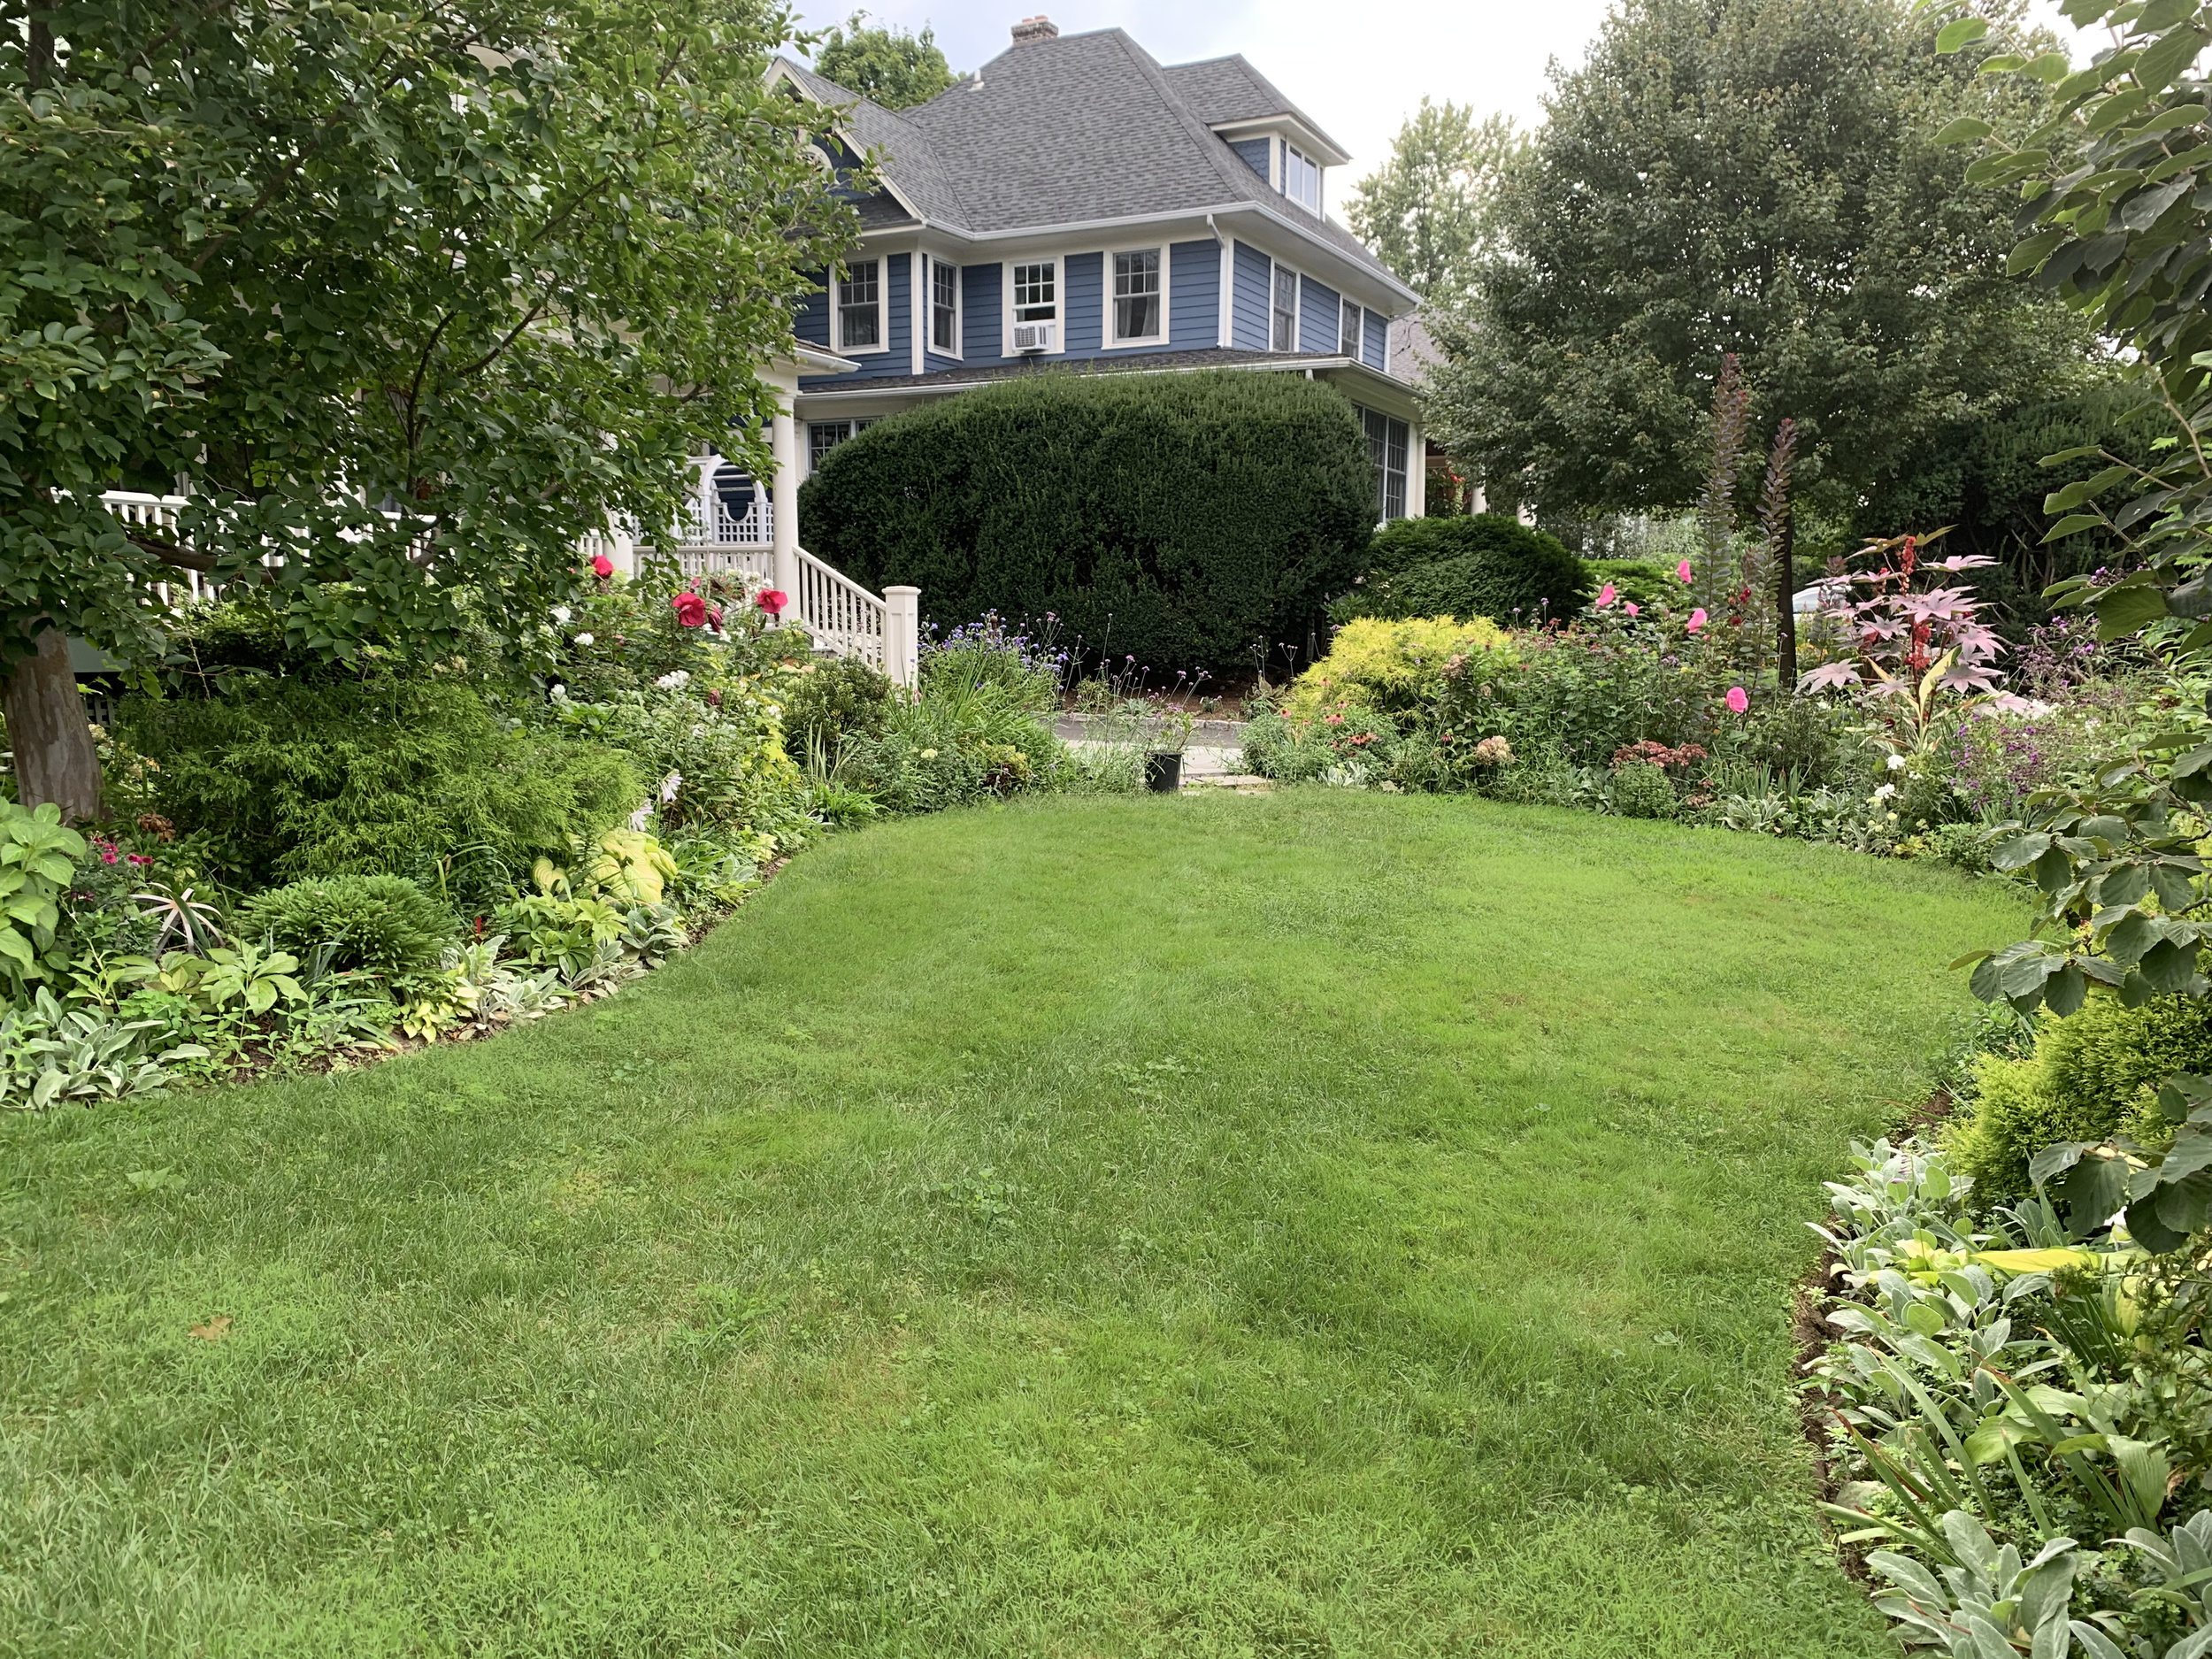 The shape and the edge make it look better. The grass hasn't been mowed in a week, so uneven heights don't help.